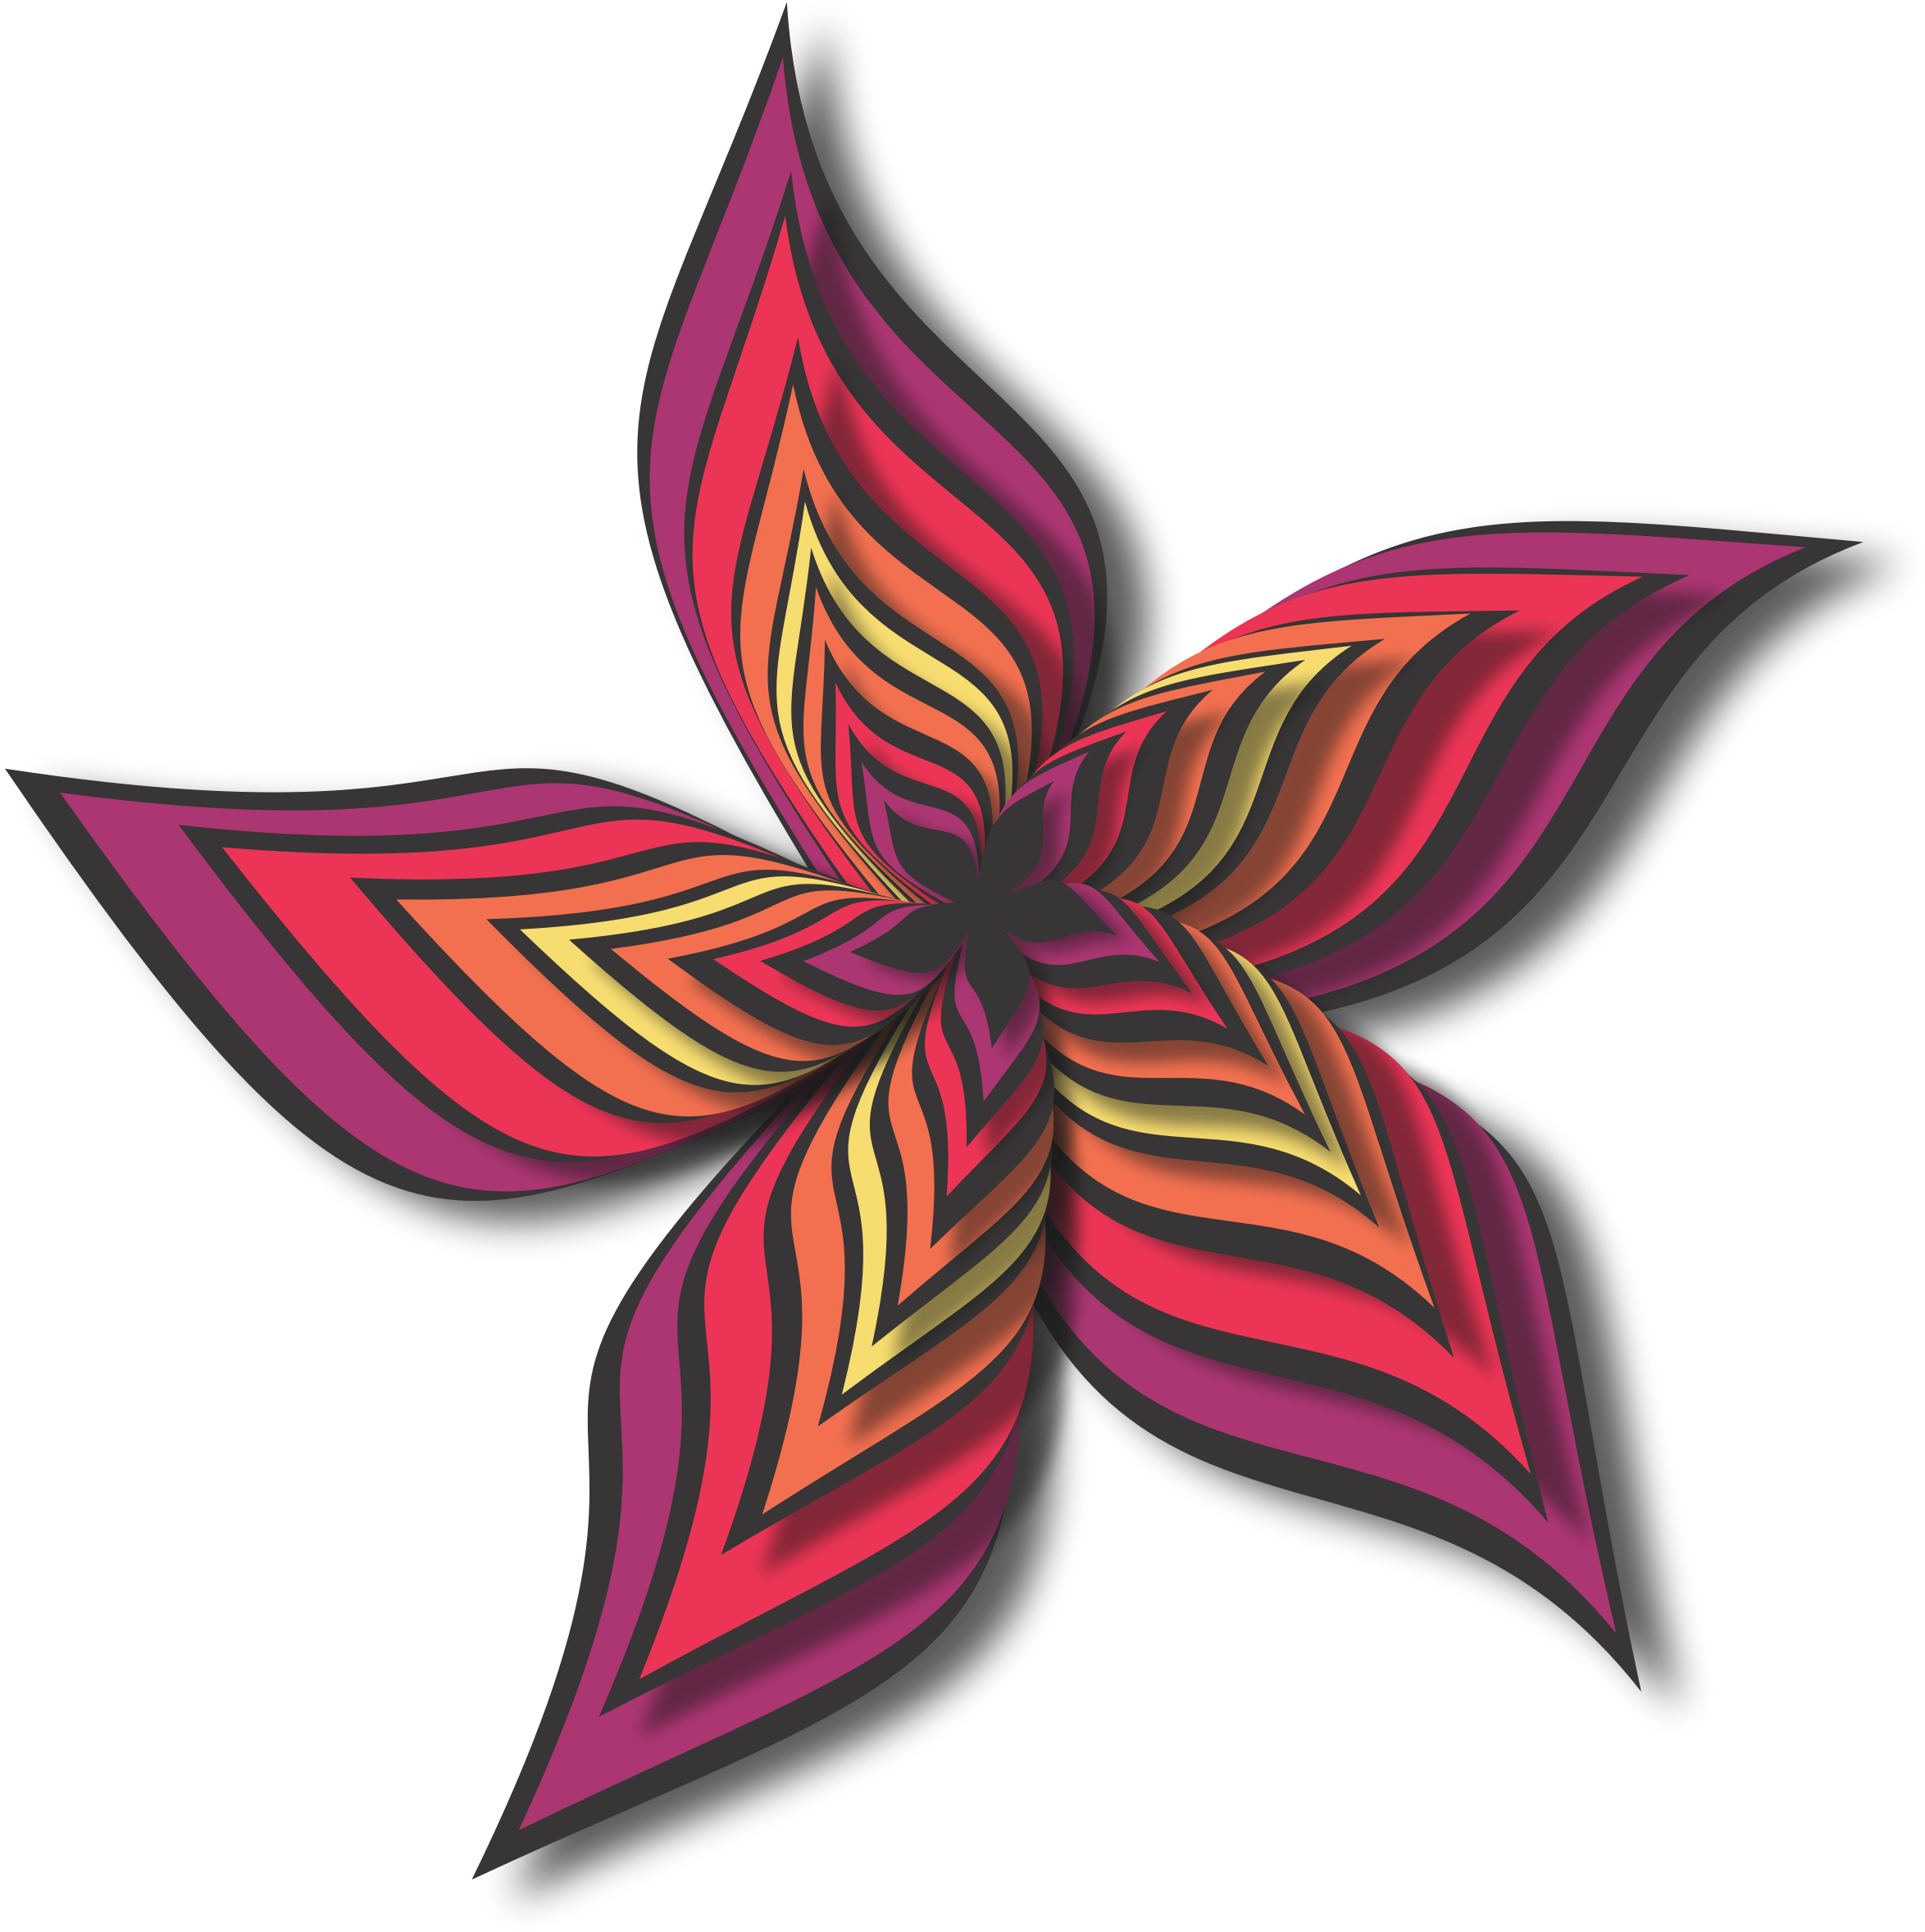 Abstract flower 28 (colour 3) by Firkin